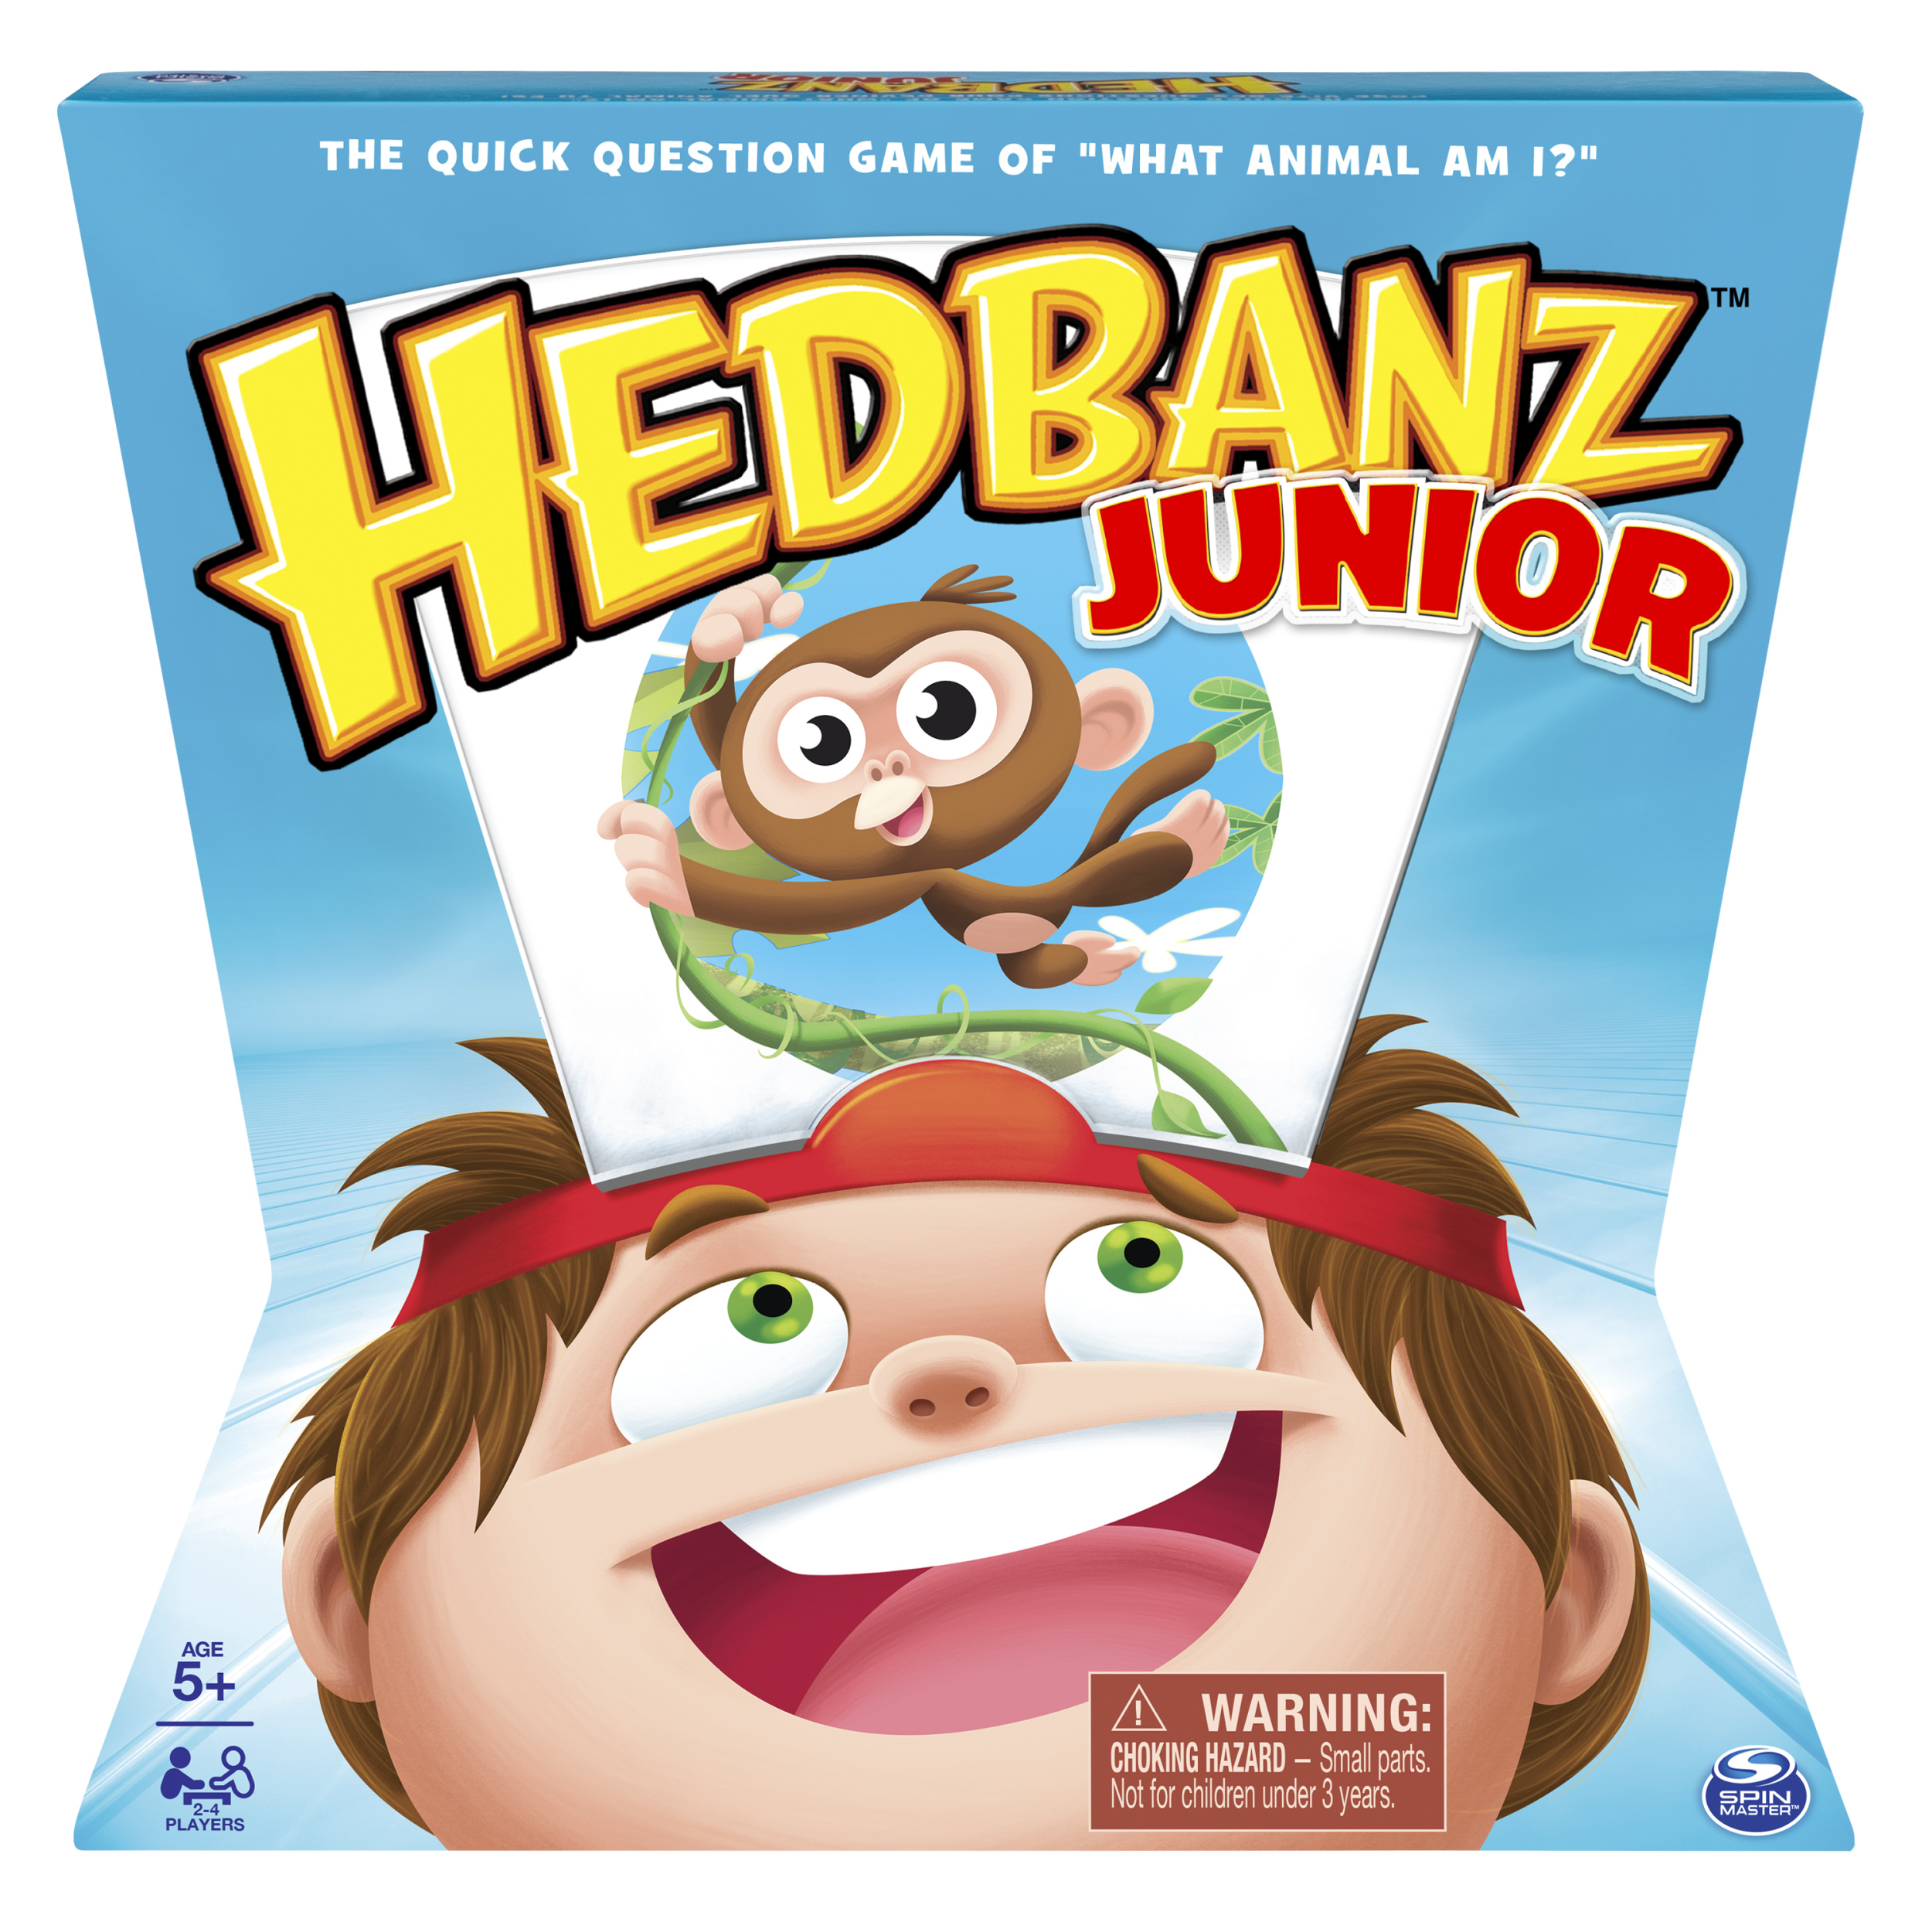 HedBanz ‐ HedBanz Jr. Family Board Game for Kids Age 5 And Up